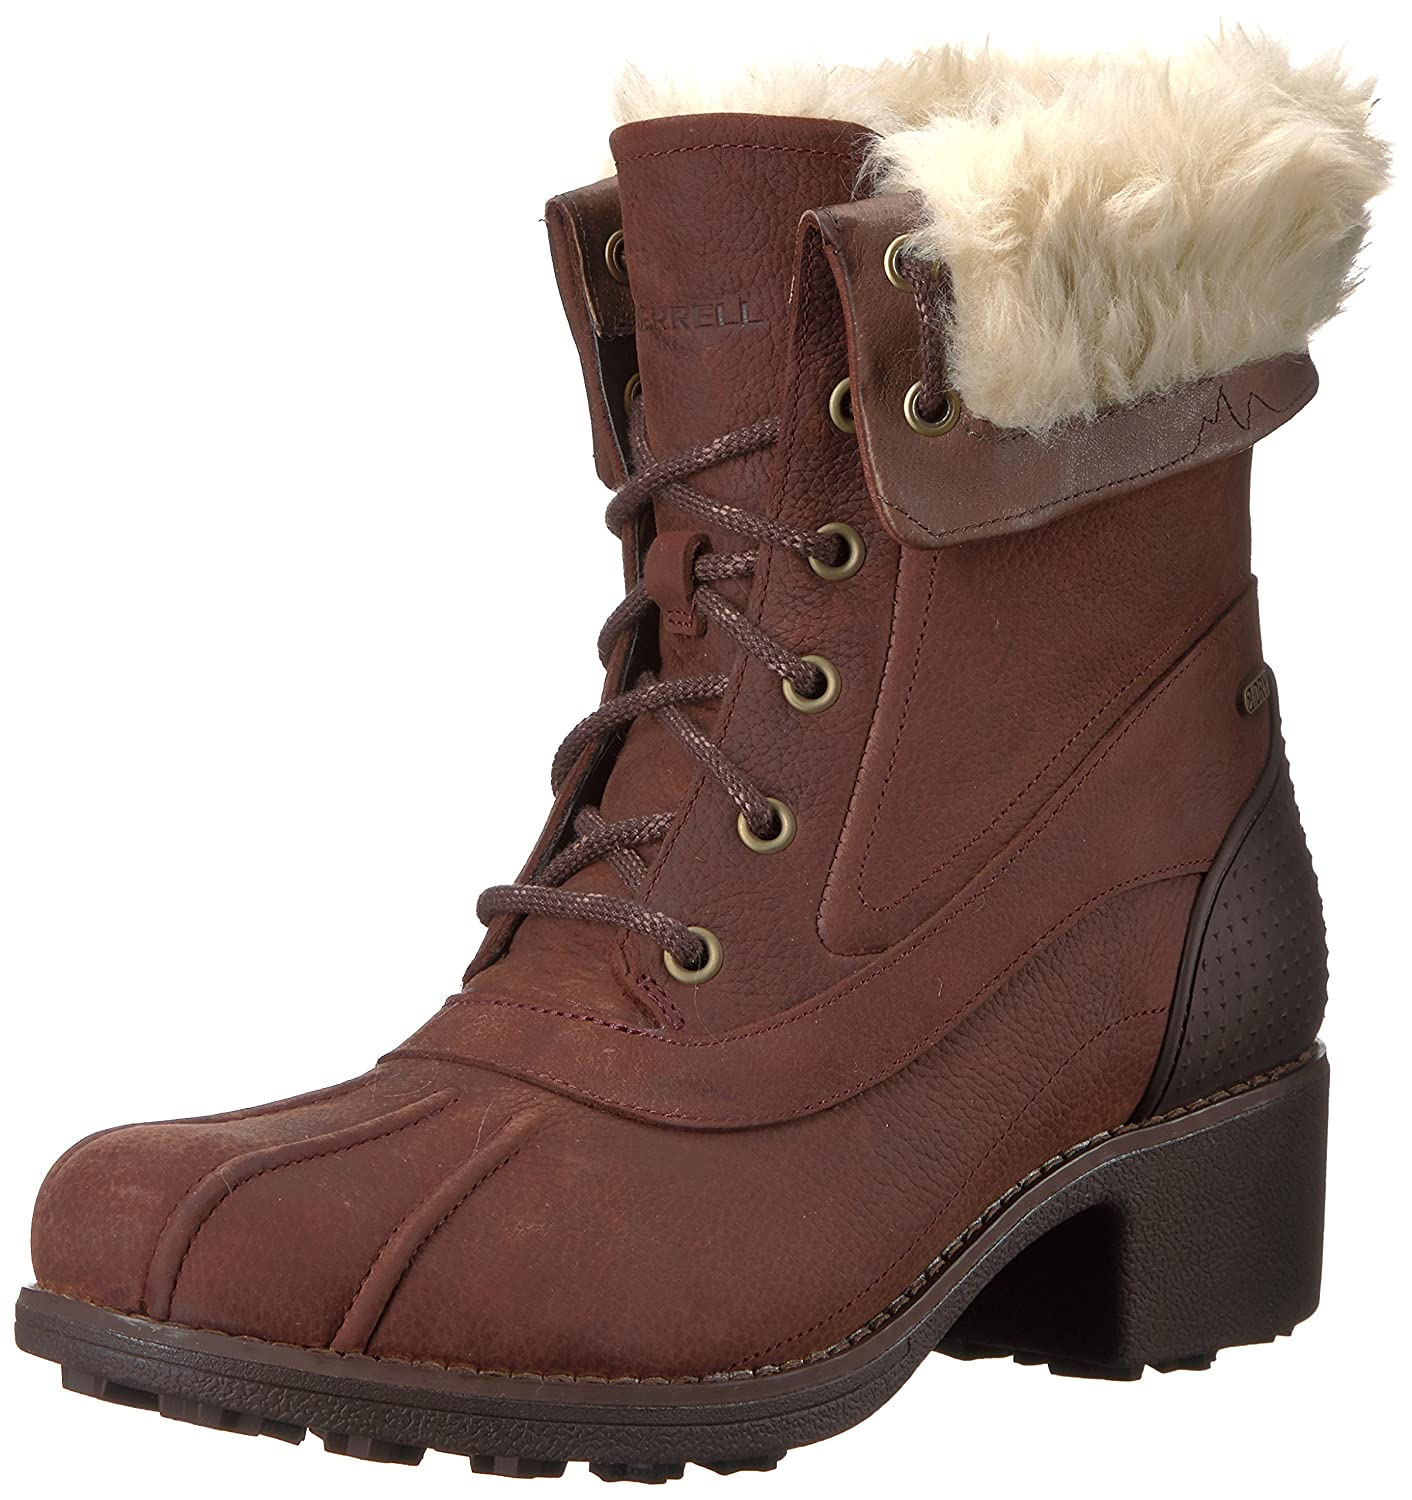 Merrell Women's Chateau Mid Lace Polar Waterproof Snow Boot B01N5SE02C 10.5 B(M) US|Brunette